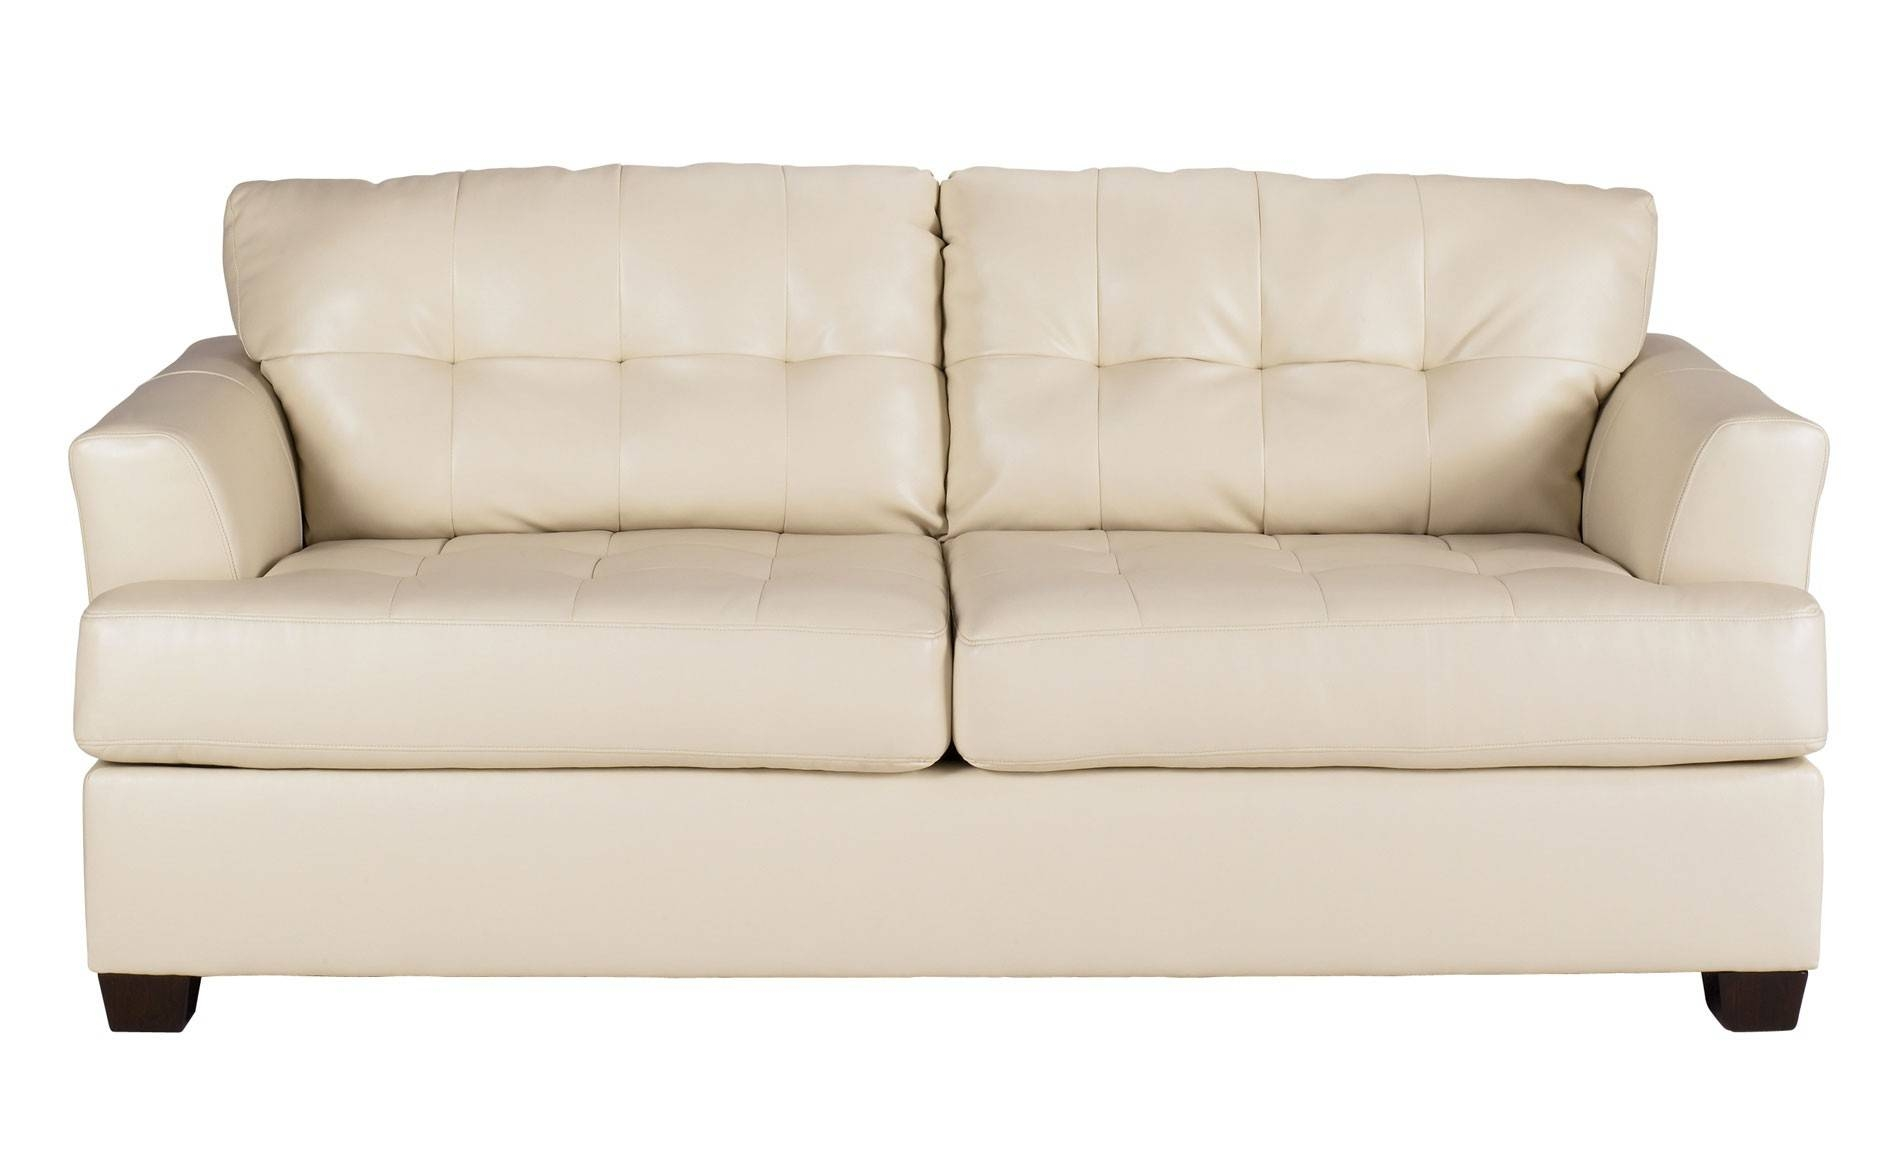 Inspiring Leather Queen Sleeper Sofa Latest Living Room Decorating within Comfort Sleeper Sofas (Image 18 of 30)